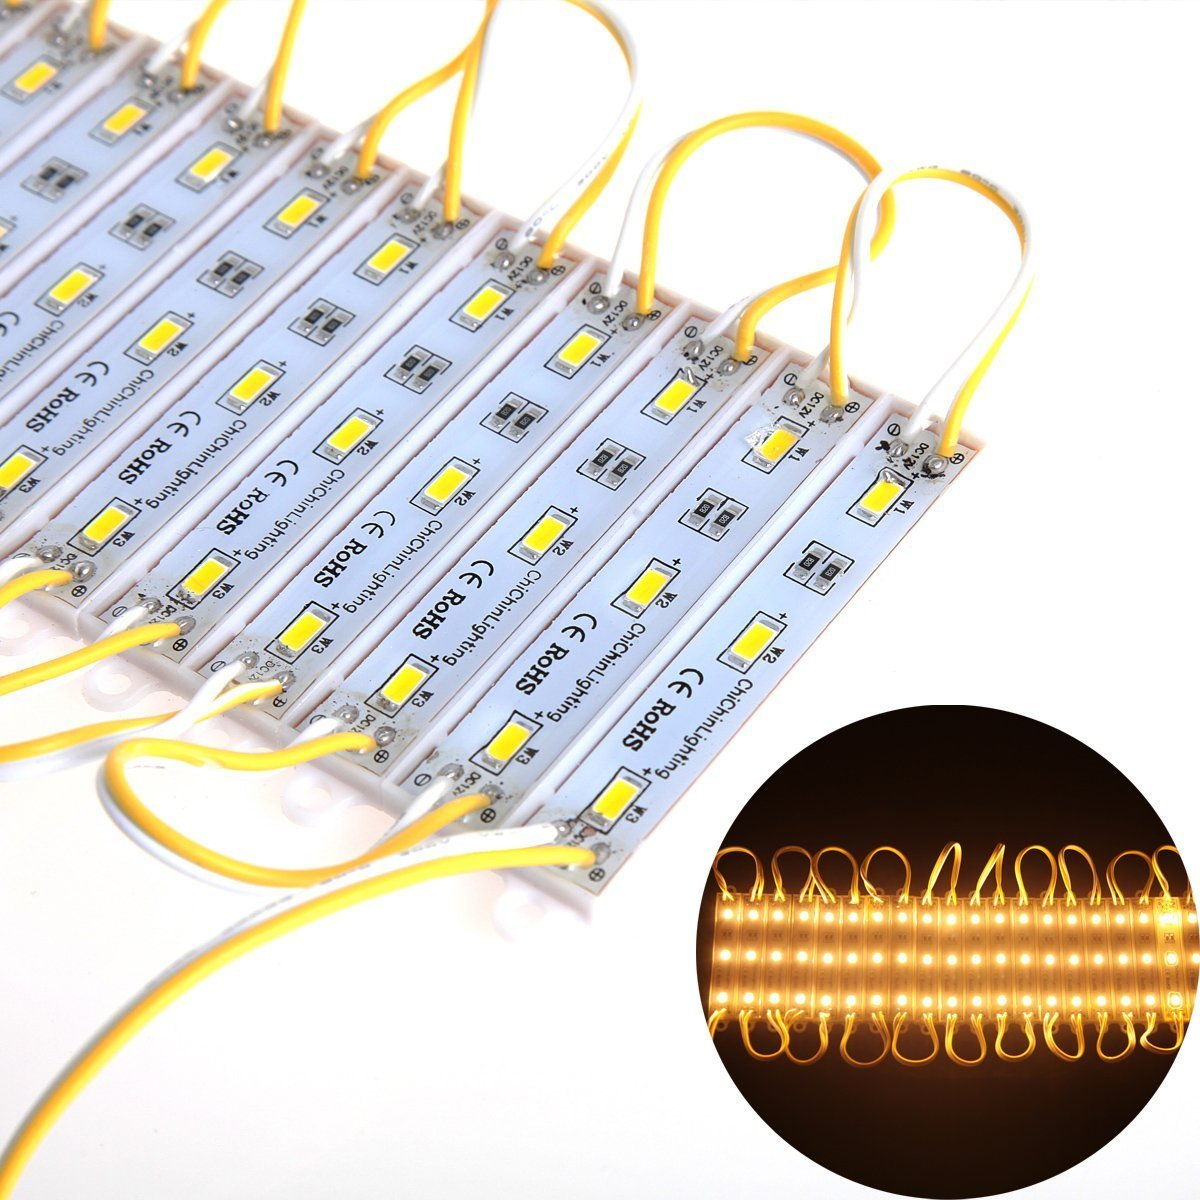 ChiChinLighting 100 Pieces (20 pcs x 5 Packs) - 12 Volt LED Module - SMD LED Chip - Super Bright - IP65 Waterproof (Warm White)